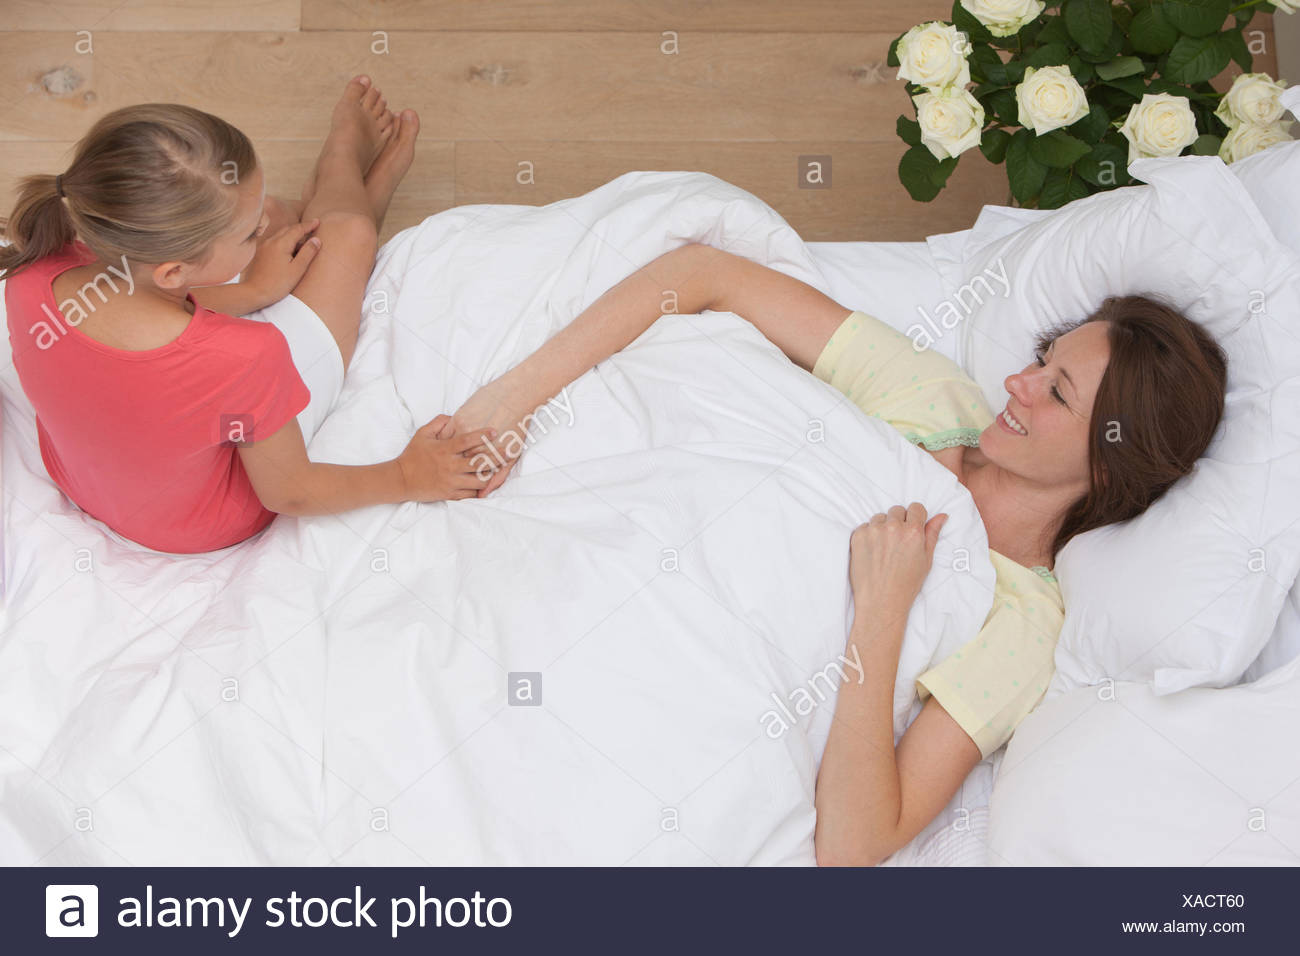 Mother laying in bed  with daughter holding hand - Stock Image